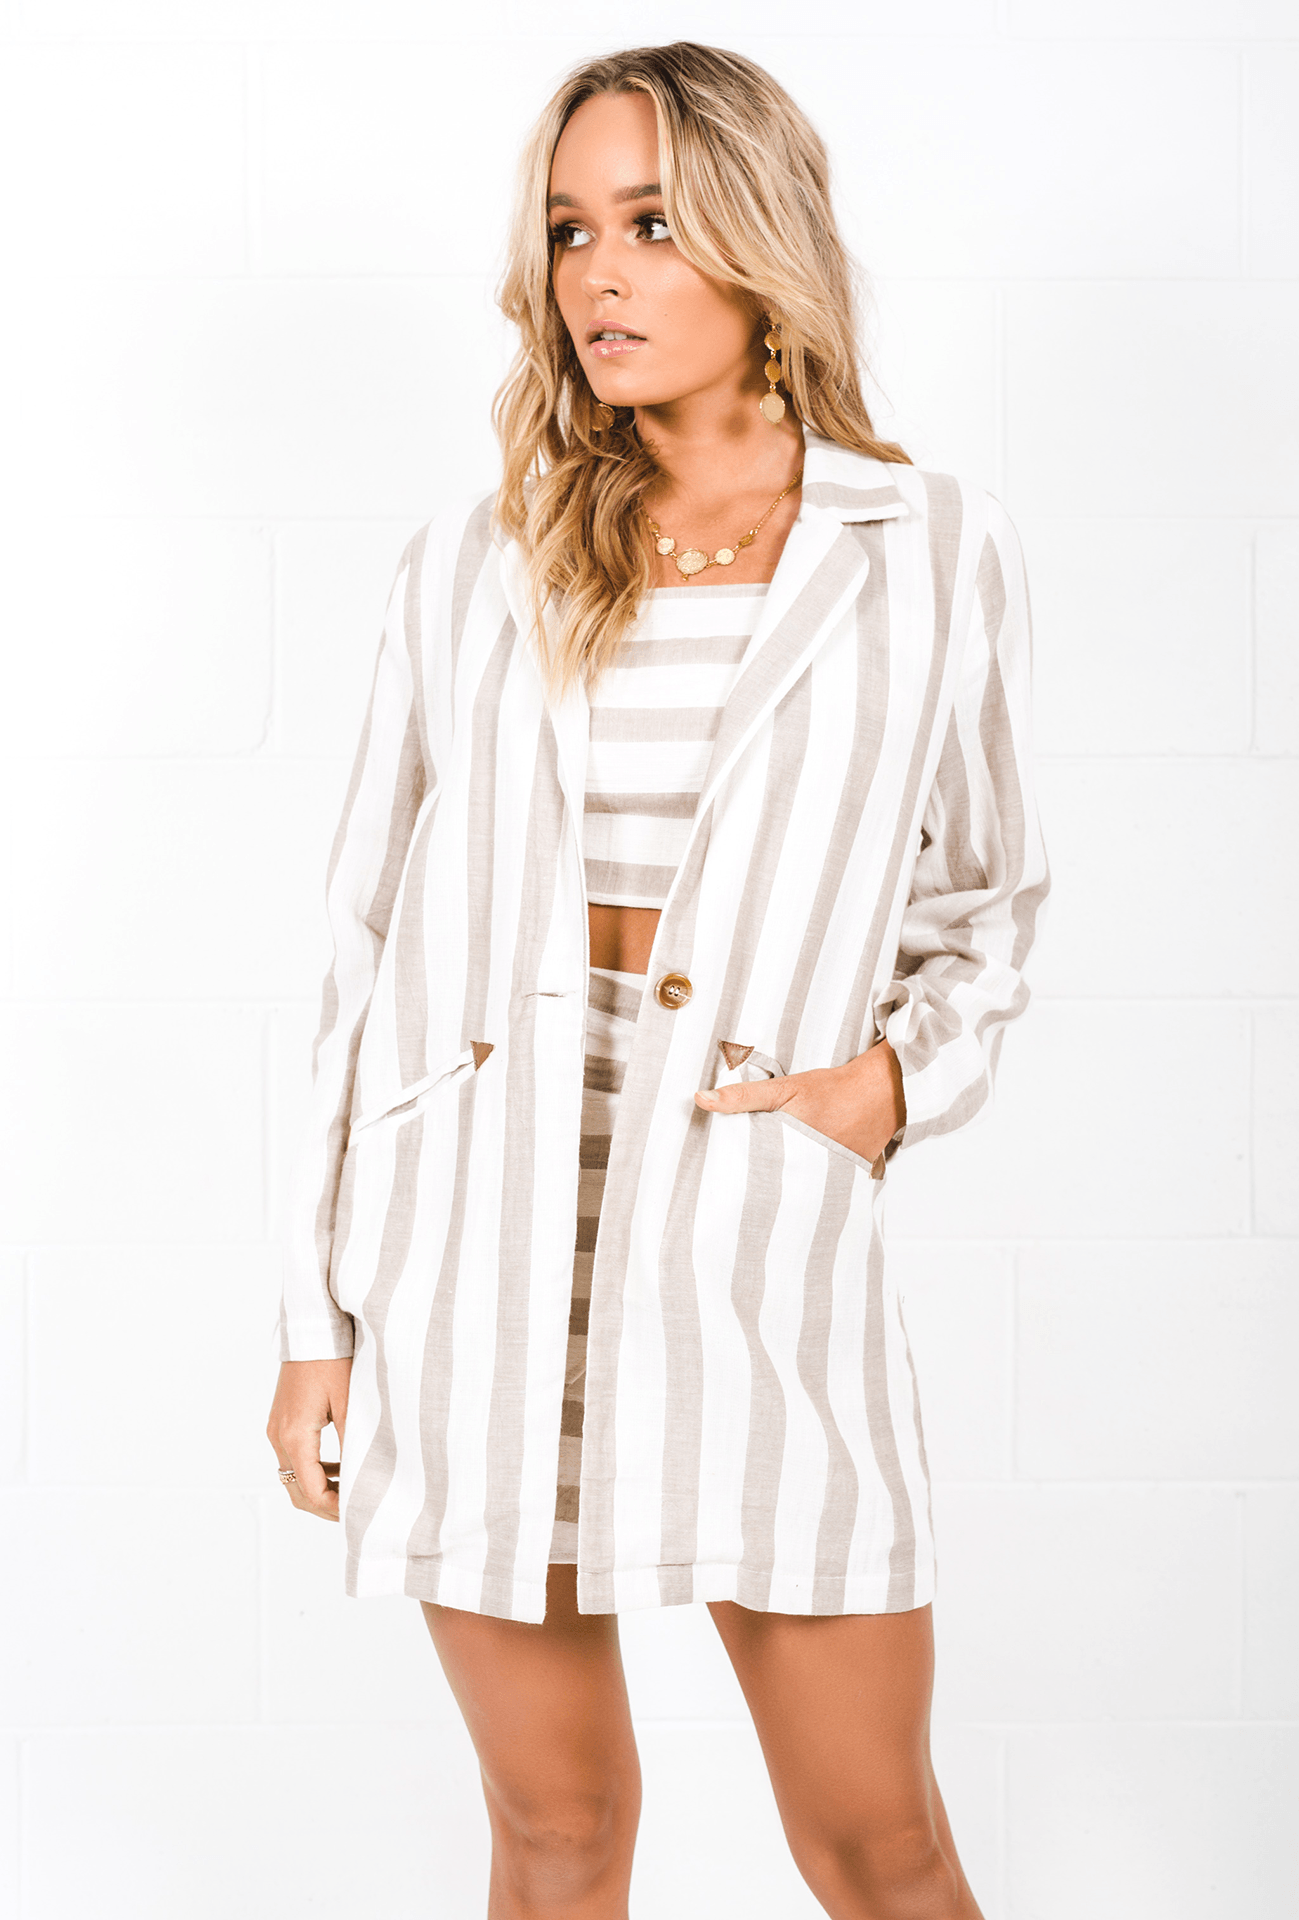 New Wave Blazer | Beige/White Stripe